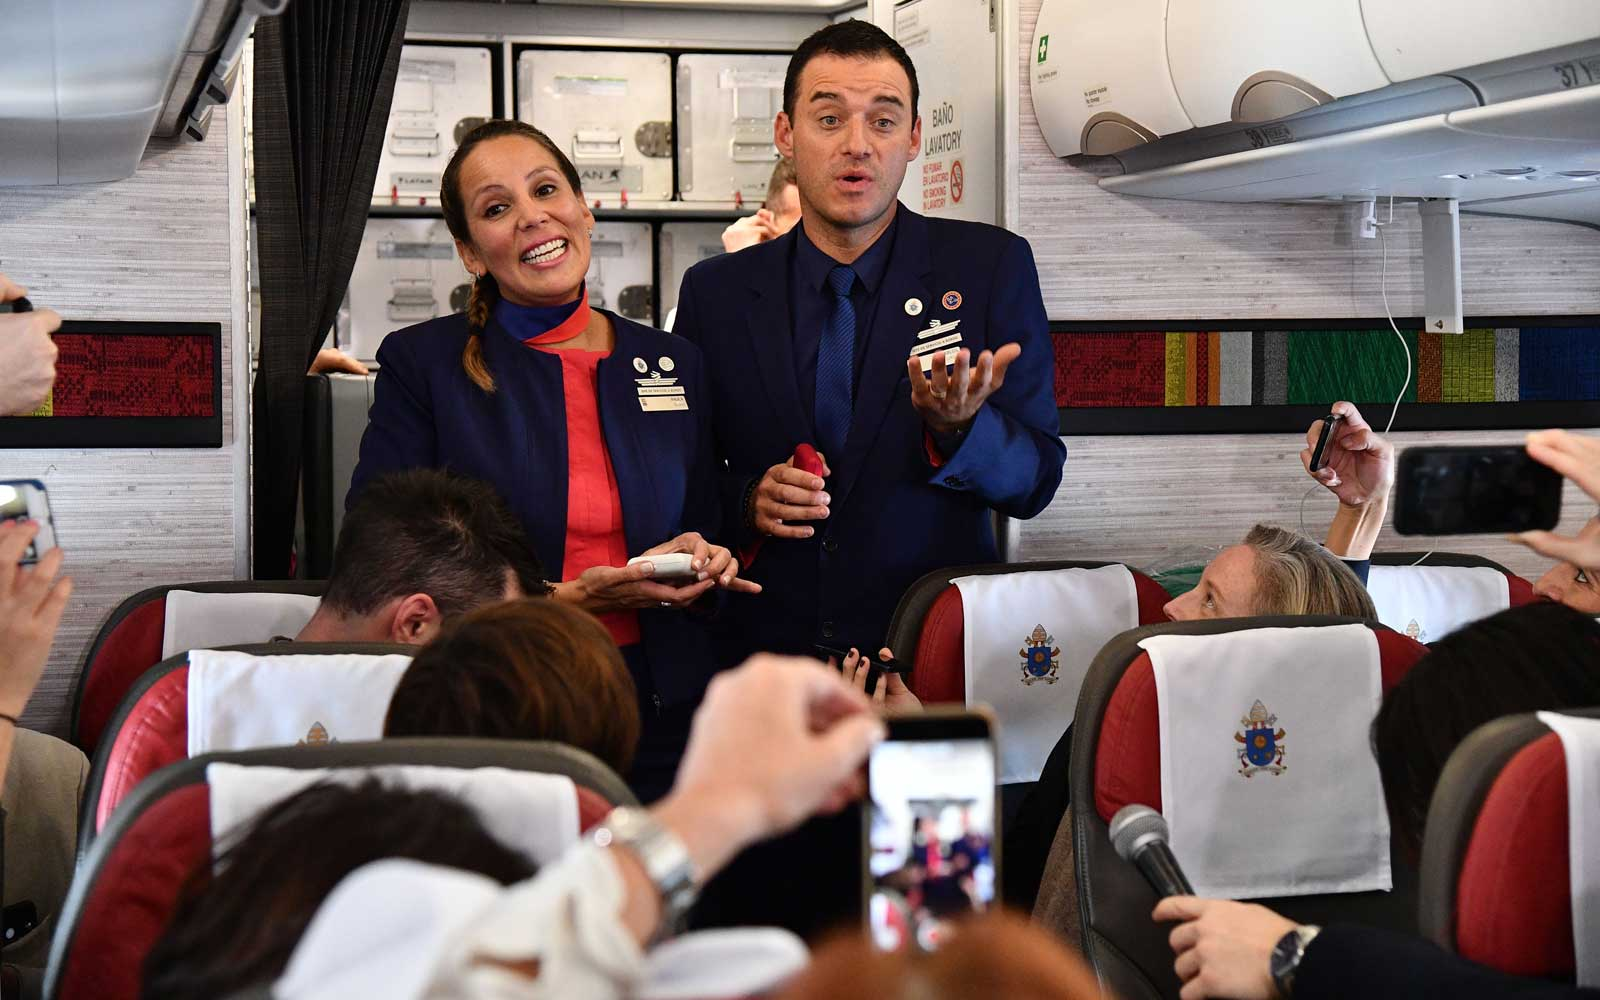 Crew members Paula Podest (L) and Carlos Ciuffardi smile after being married by Pope Francis during the flight between Santiago and the northern city of Iquique on January 18, 2018